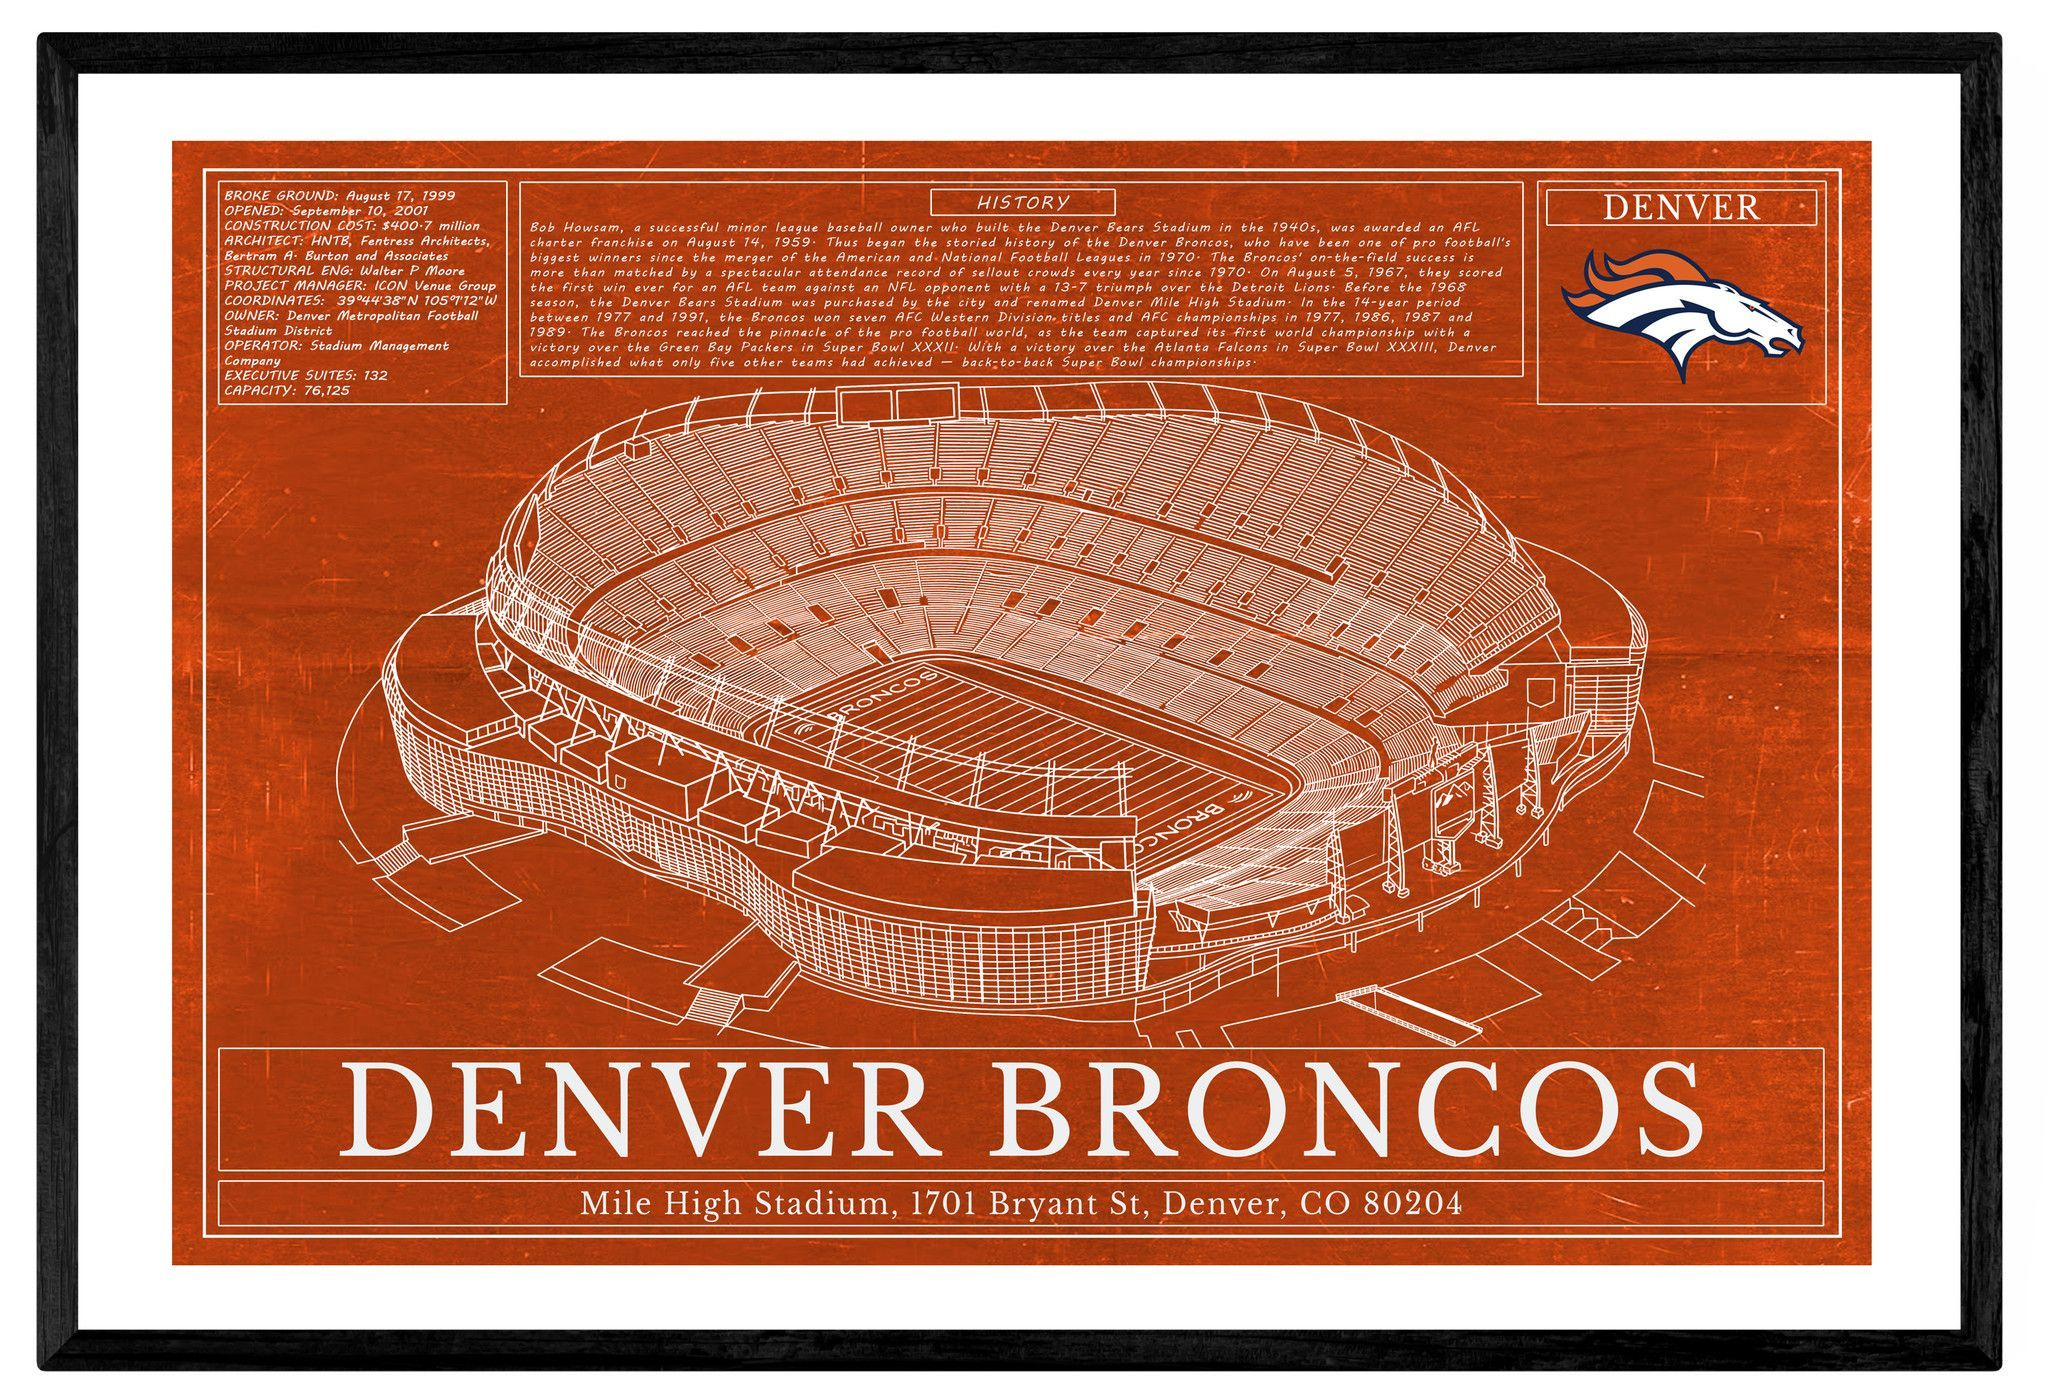 Unique nfl football stadium blueprints art denver broncos sports blugifts bronco sportsblueprint artsports malvernweather Choice Image